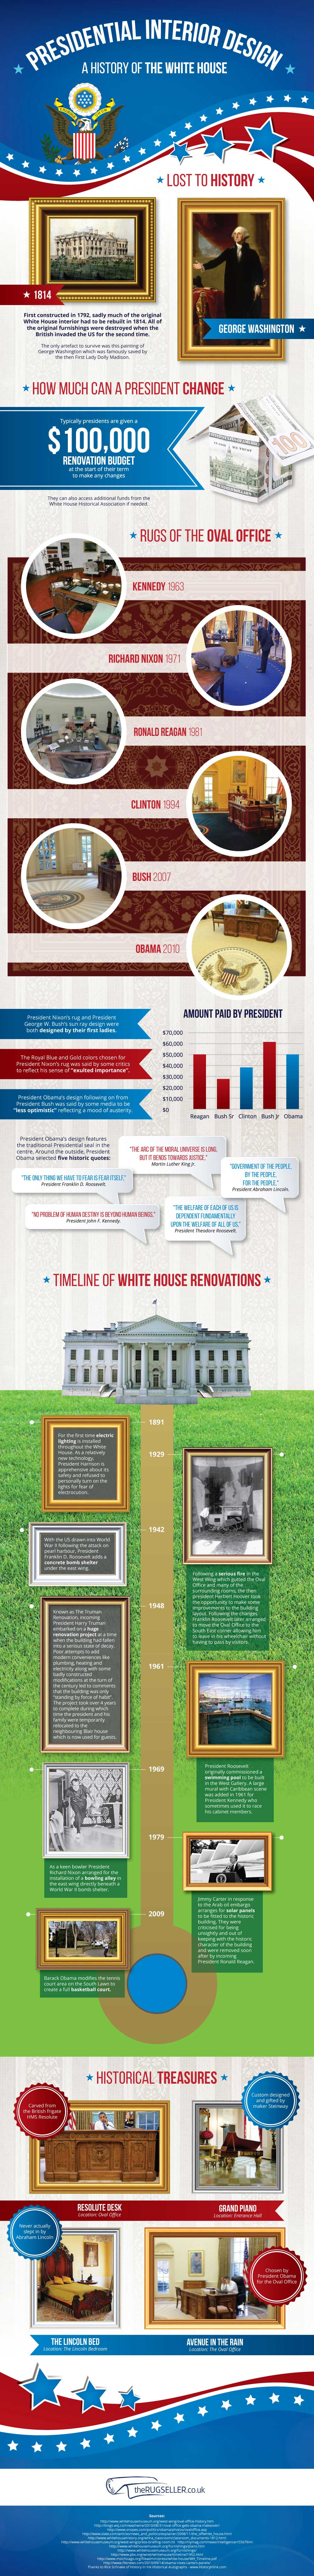 White House Renovations Rugs & Interior Design